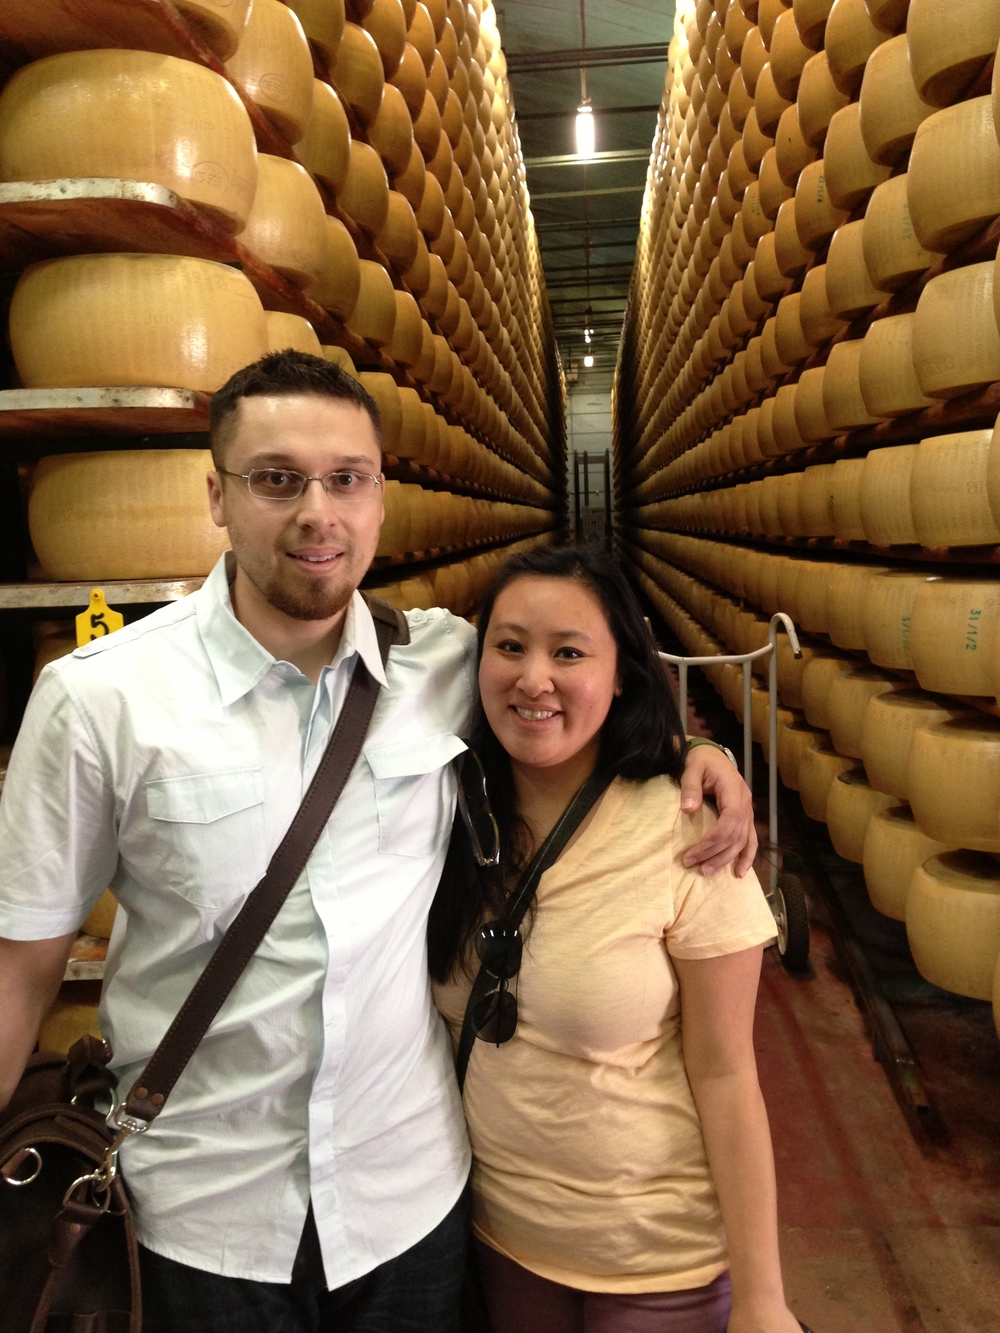 Thousands of wheels of Parmesan